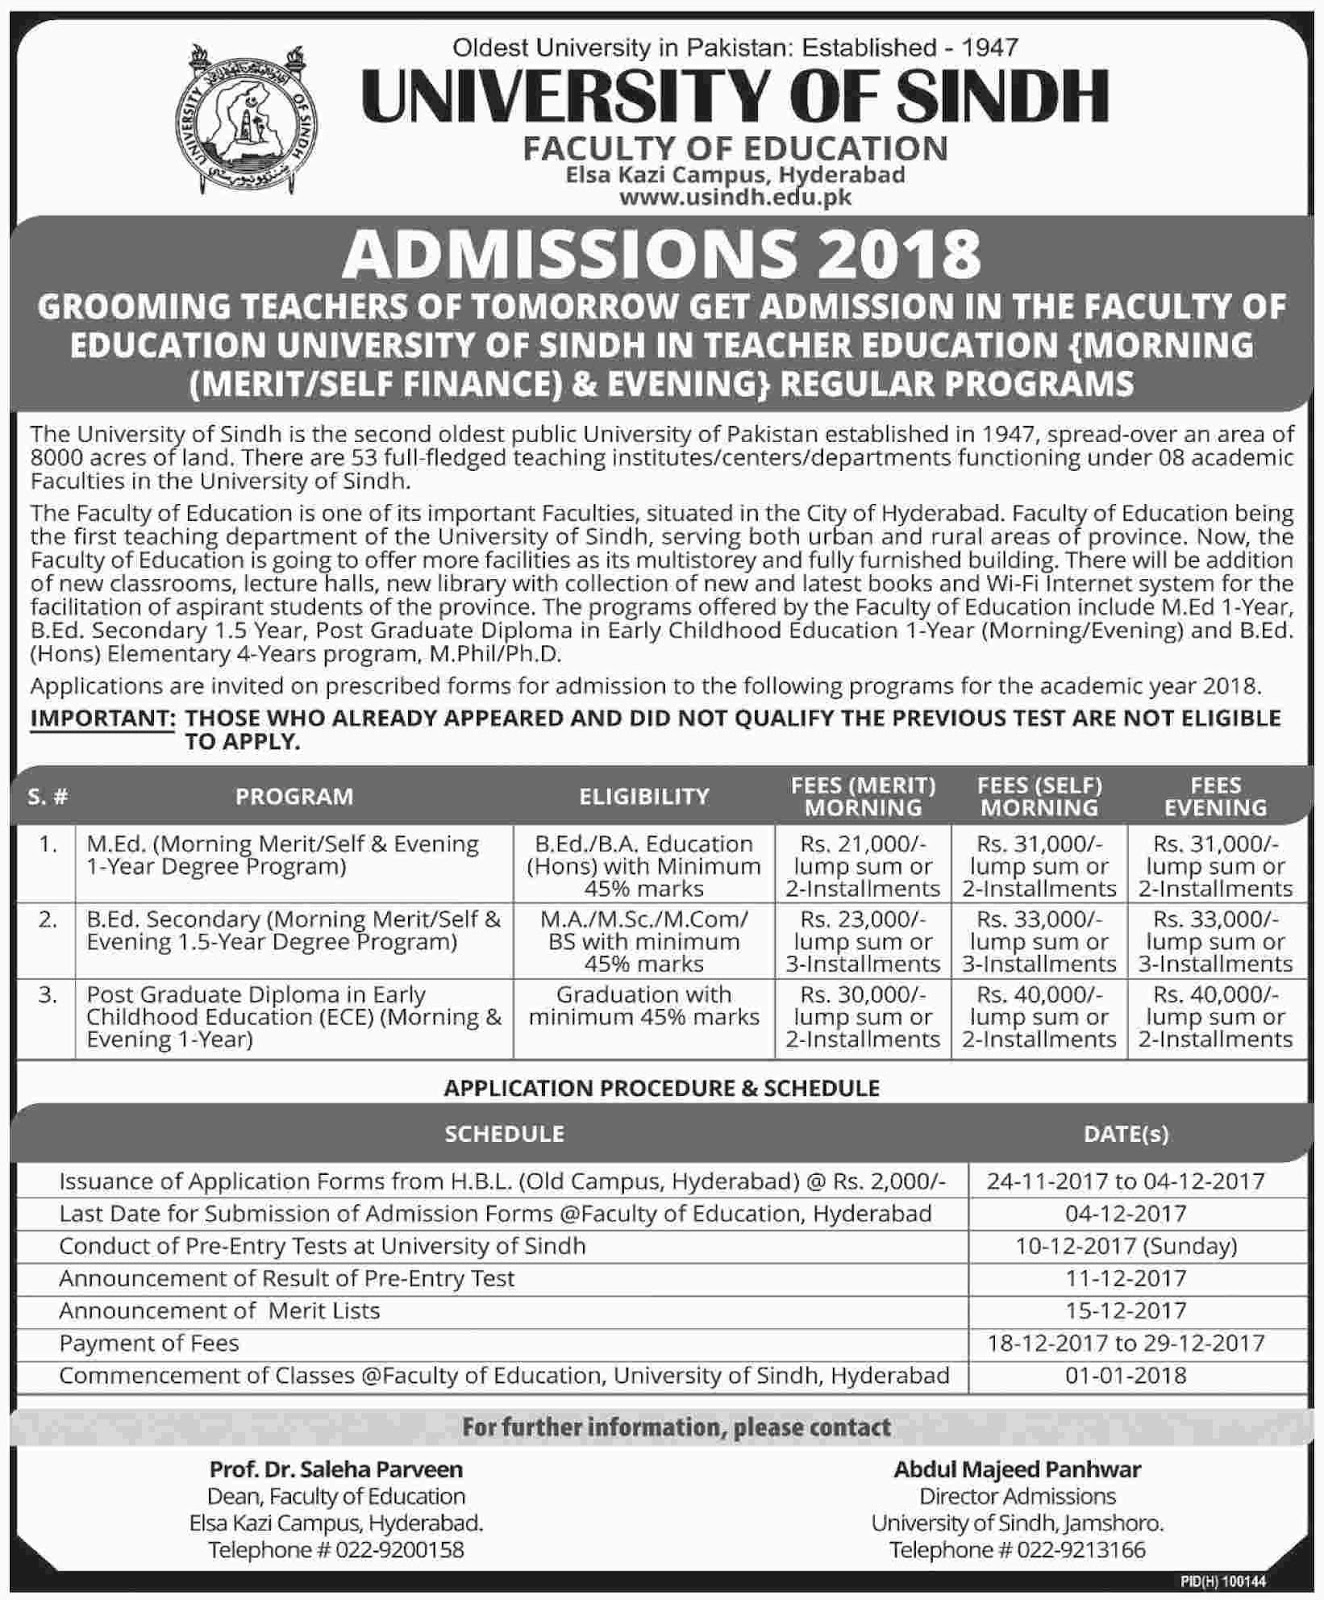 Admissions Open in University of Sindh - Elsa Kazi Campus Hyderabad